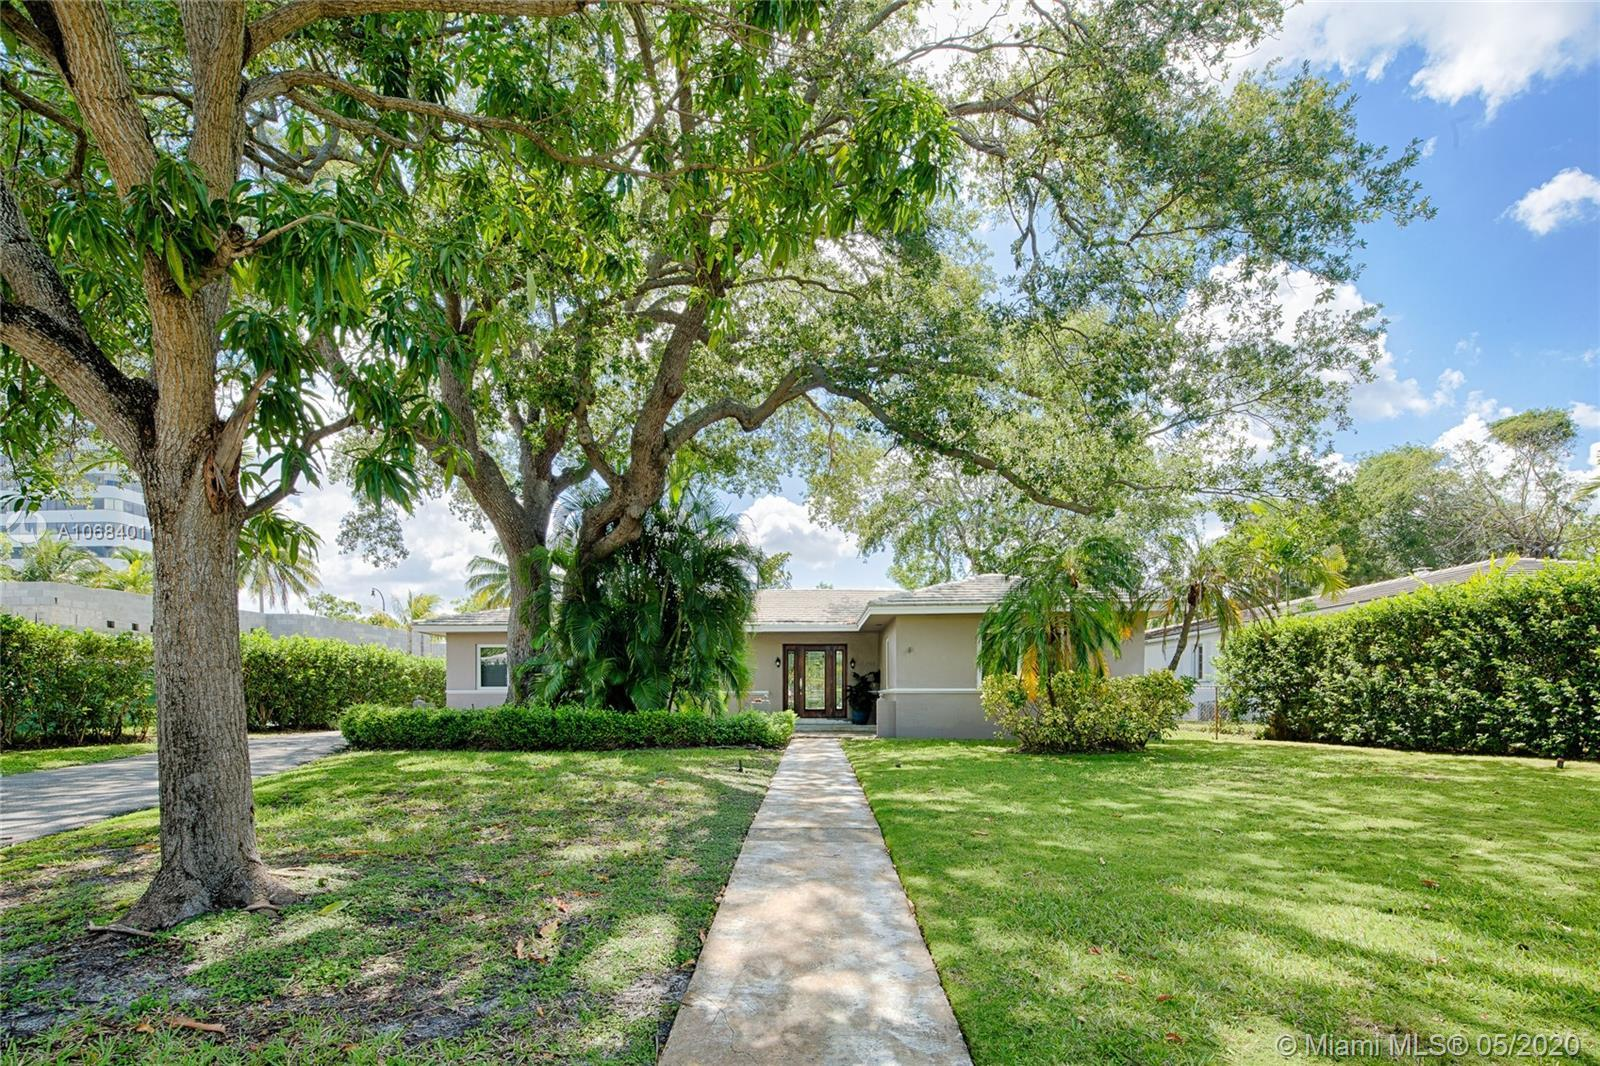 GREAT OPPORTUNITY BELOW MARKET VALUE!!! MOVE-IN READY & SPACIOUS HOME IN PRESTIGIOUS GUARDED GATED B